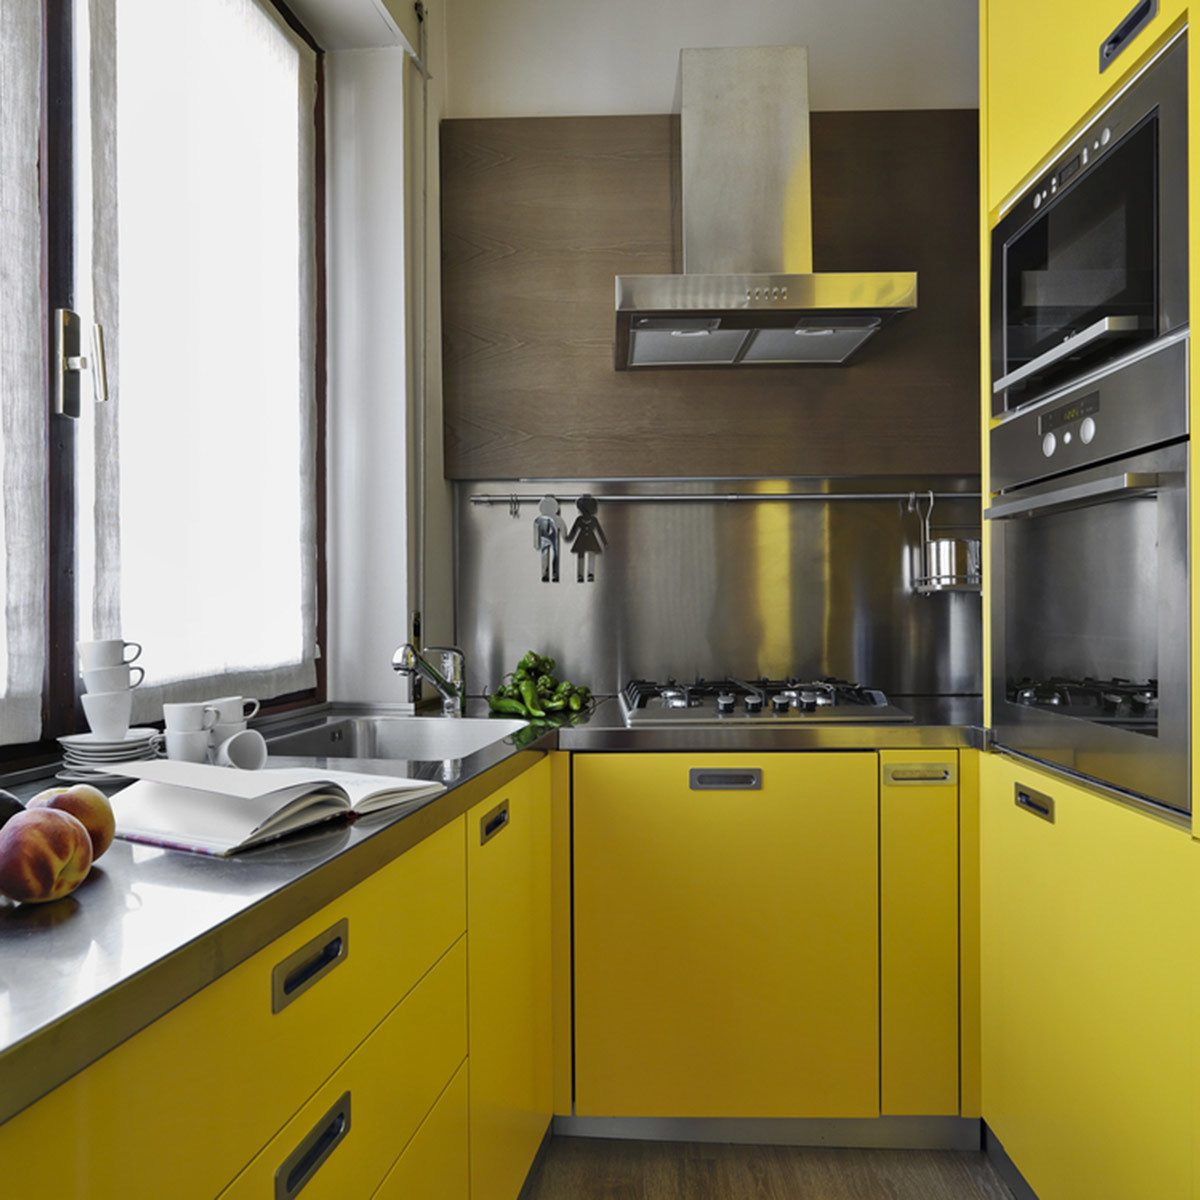 Kitchen Color Design Pictures Trending Kitchen Cabinet Colors The Family Handyman